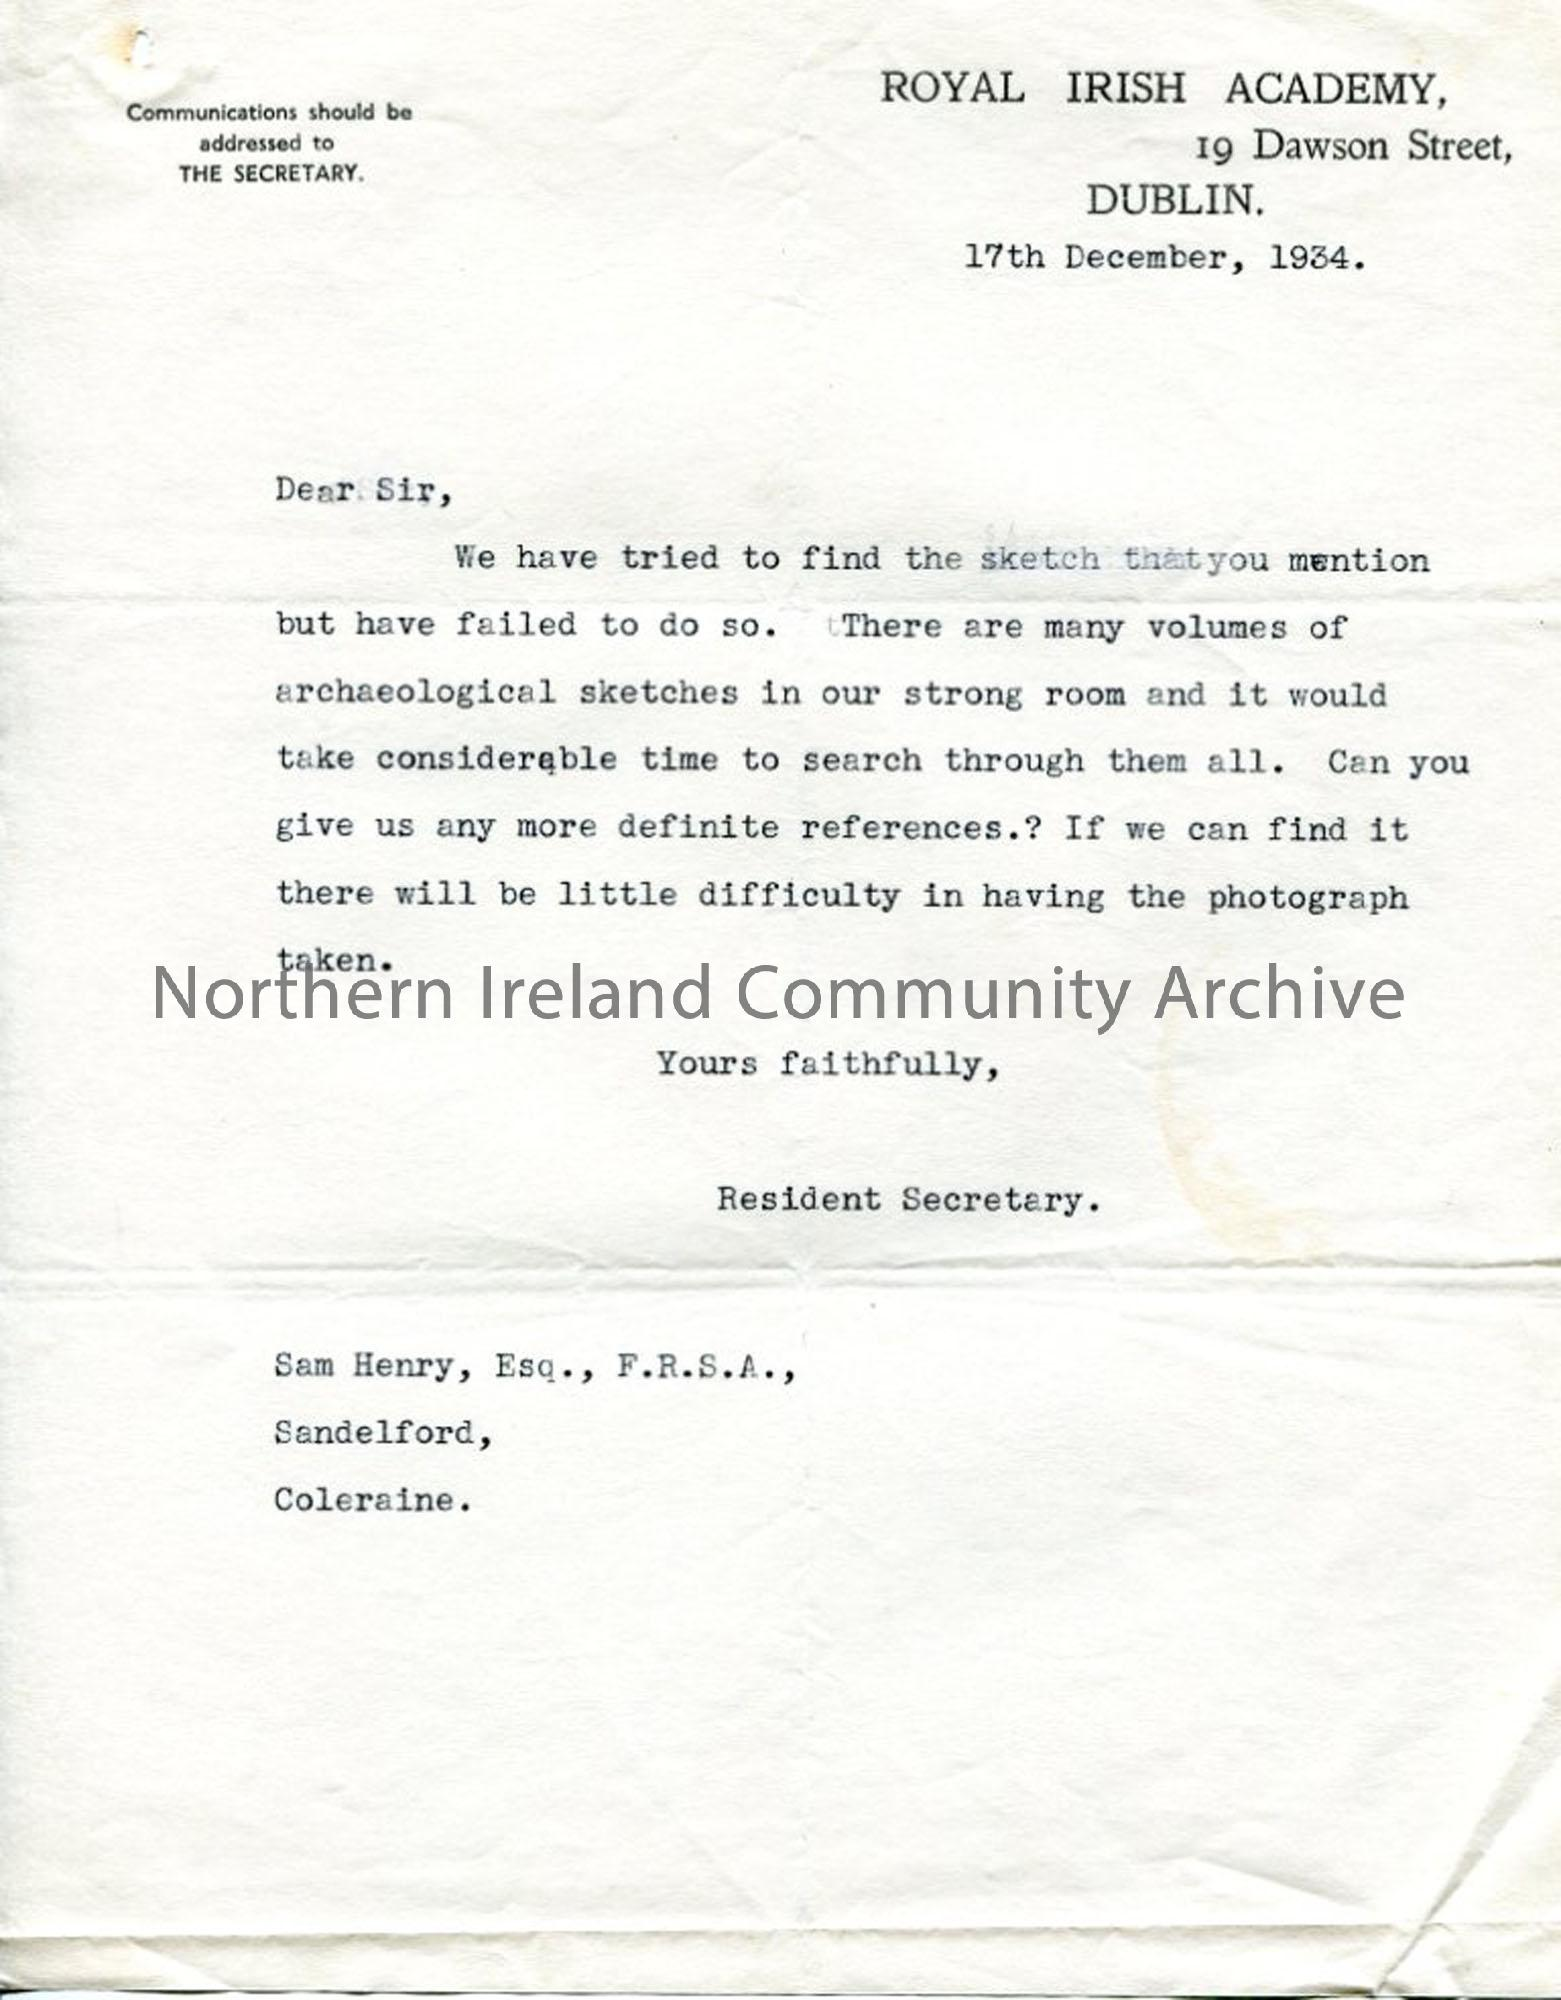 Letter on Royal Irish Academy headed paper, dated 17.12.1934